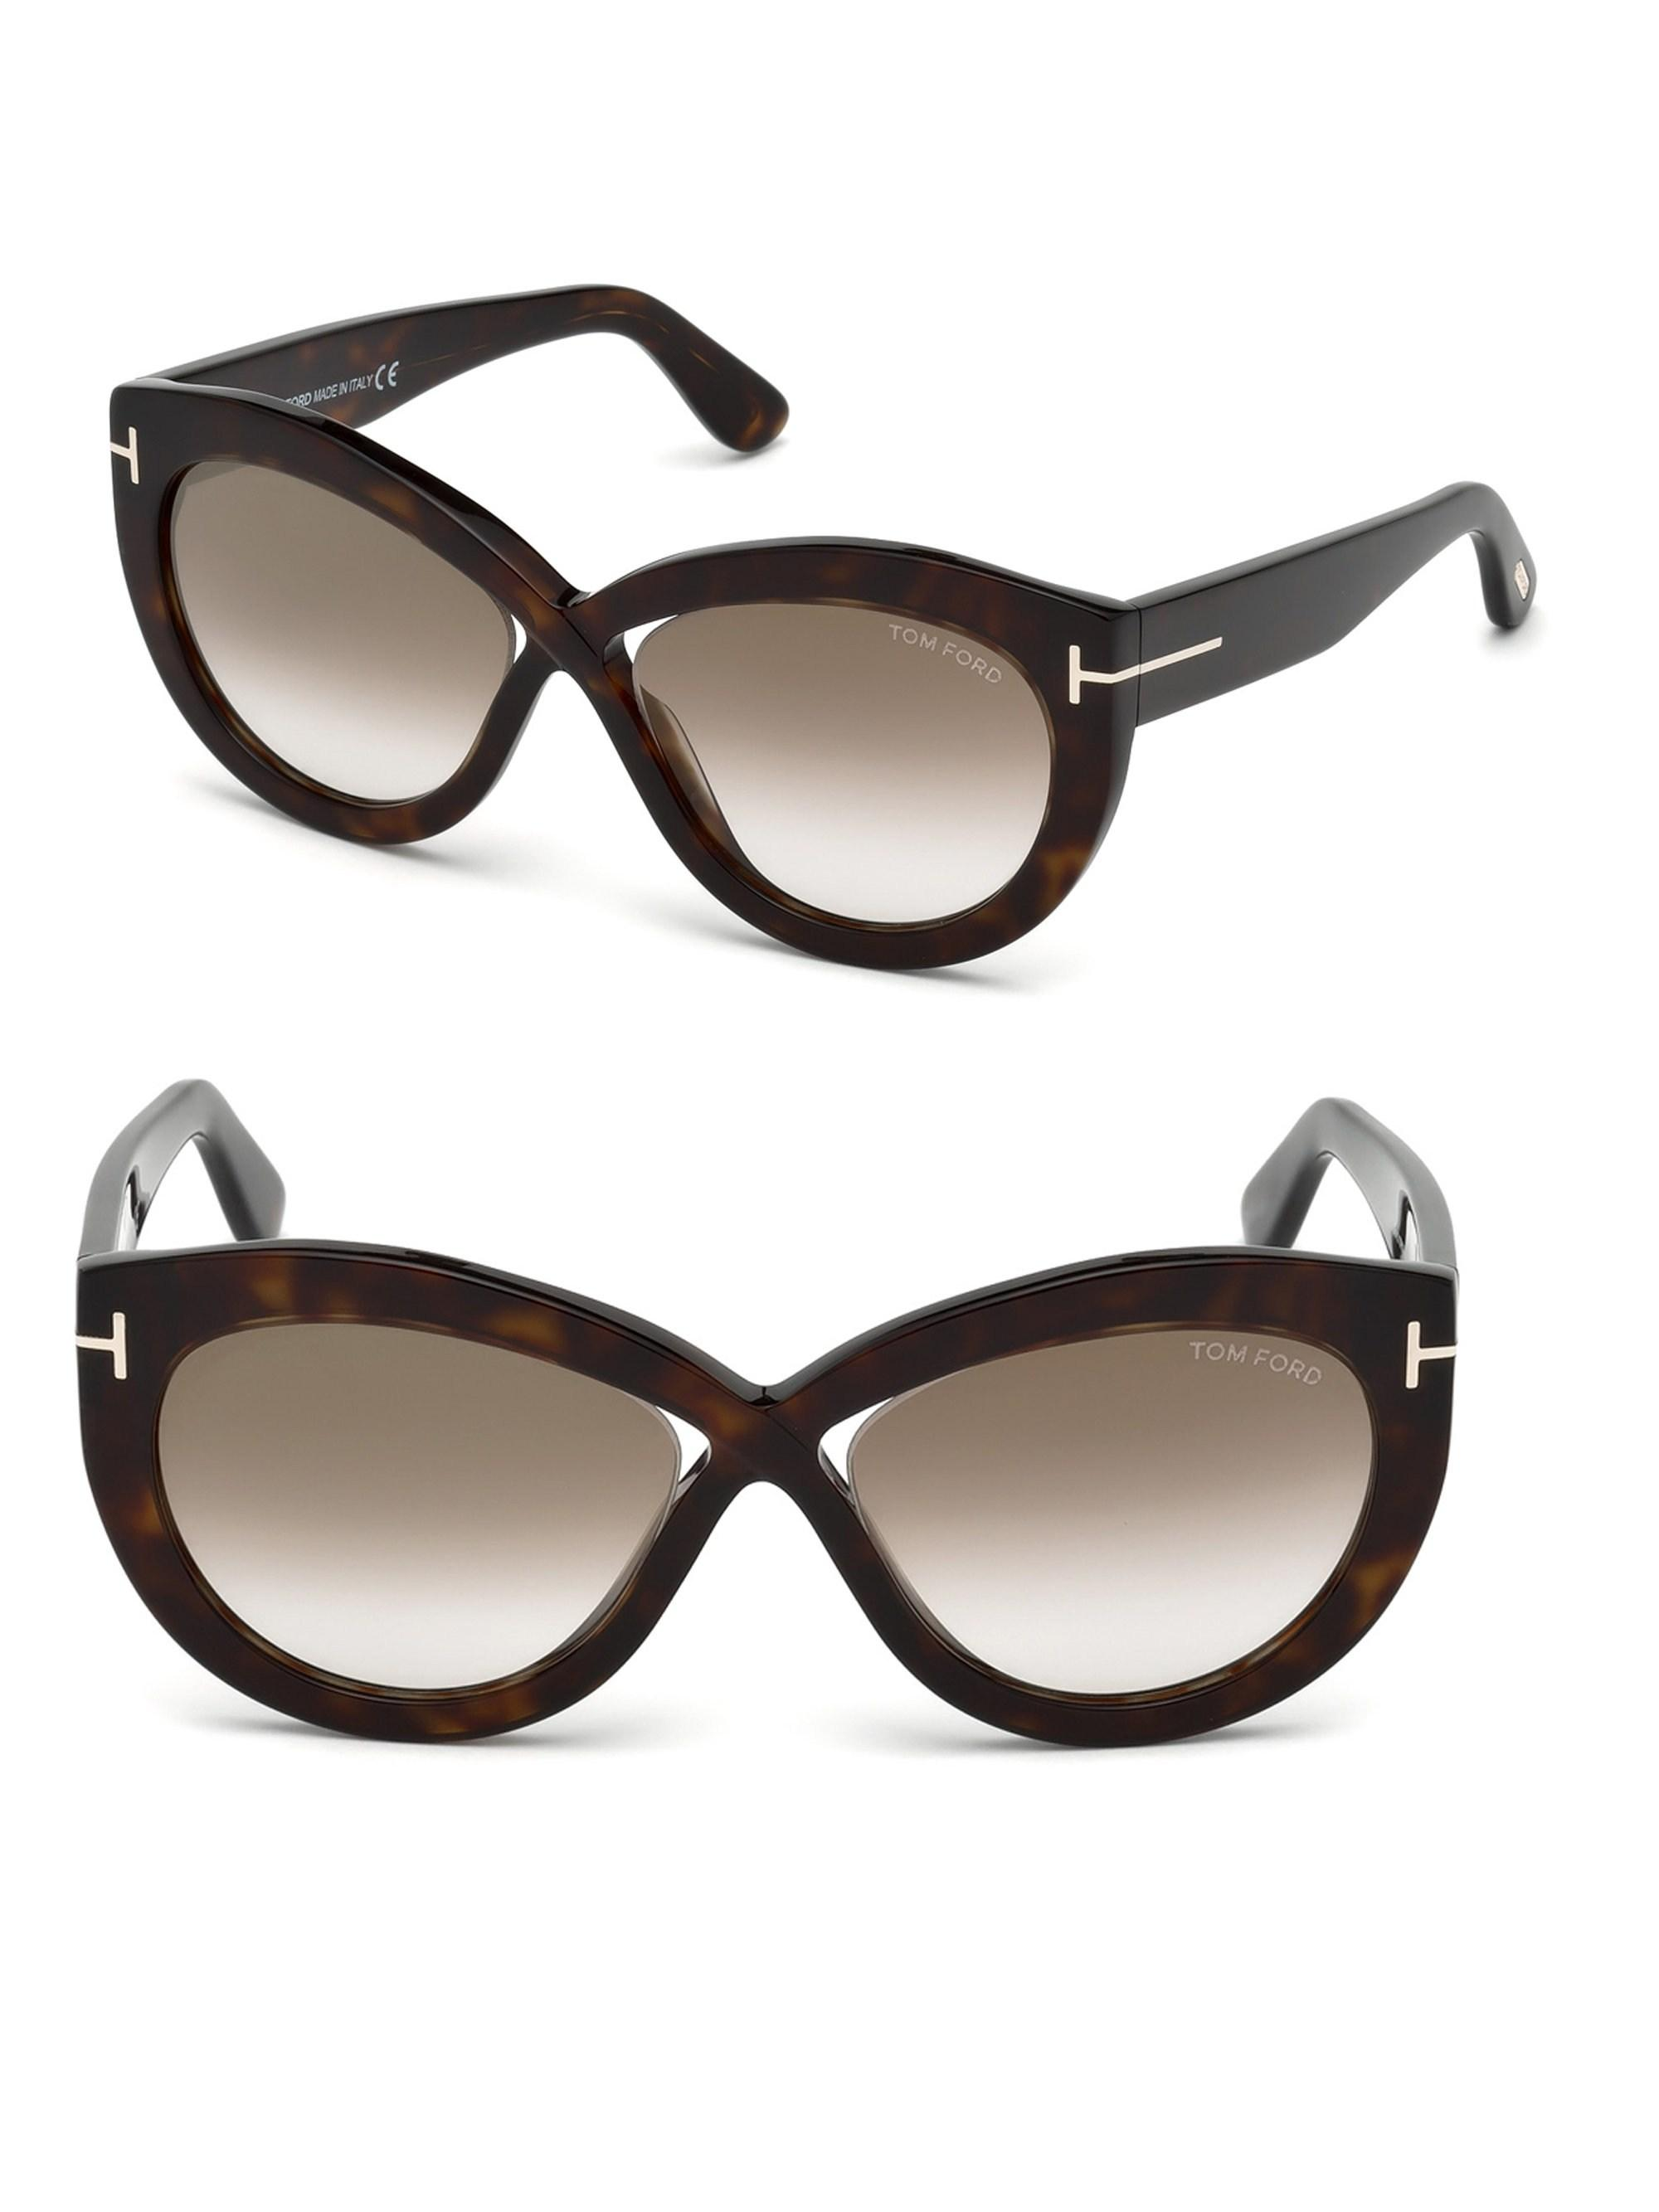 d64d460051 Tom Ford Diane 56mm Cat-eye Cross Front Sunglasses in Brown - Lyst